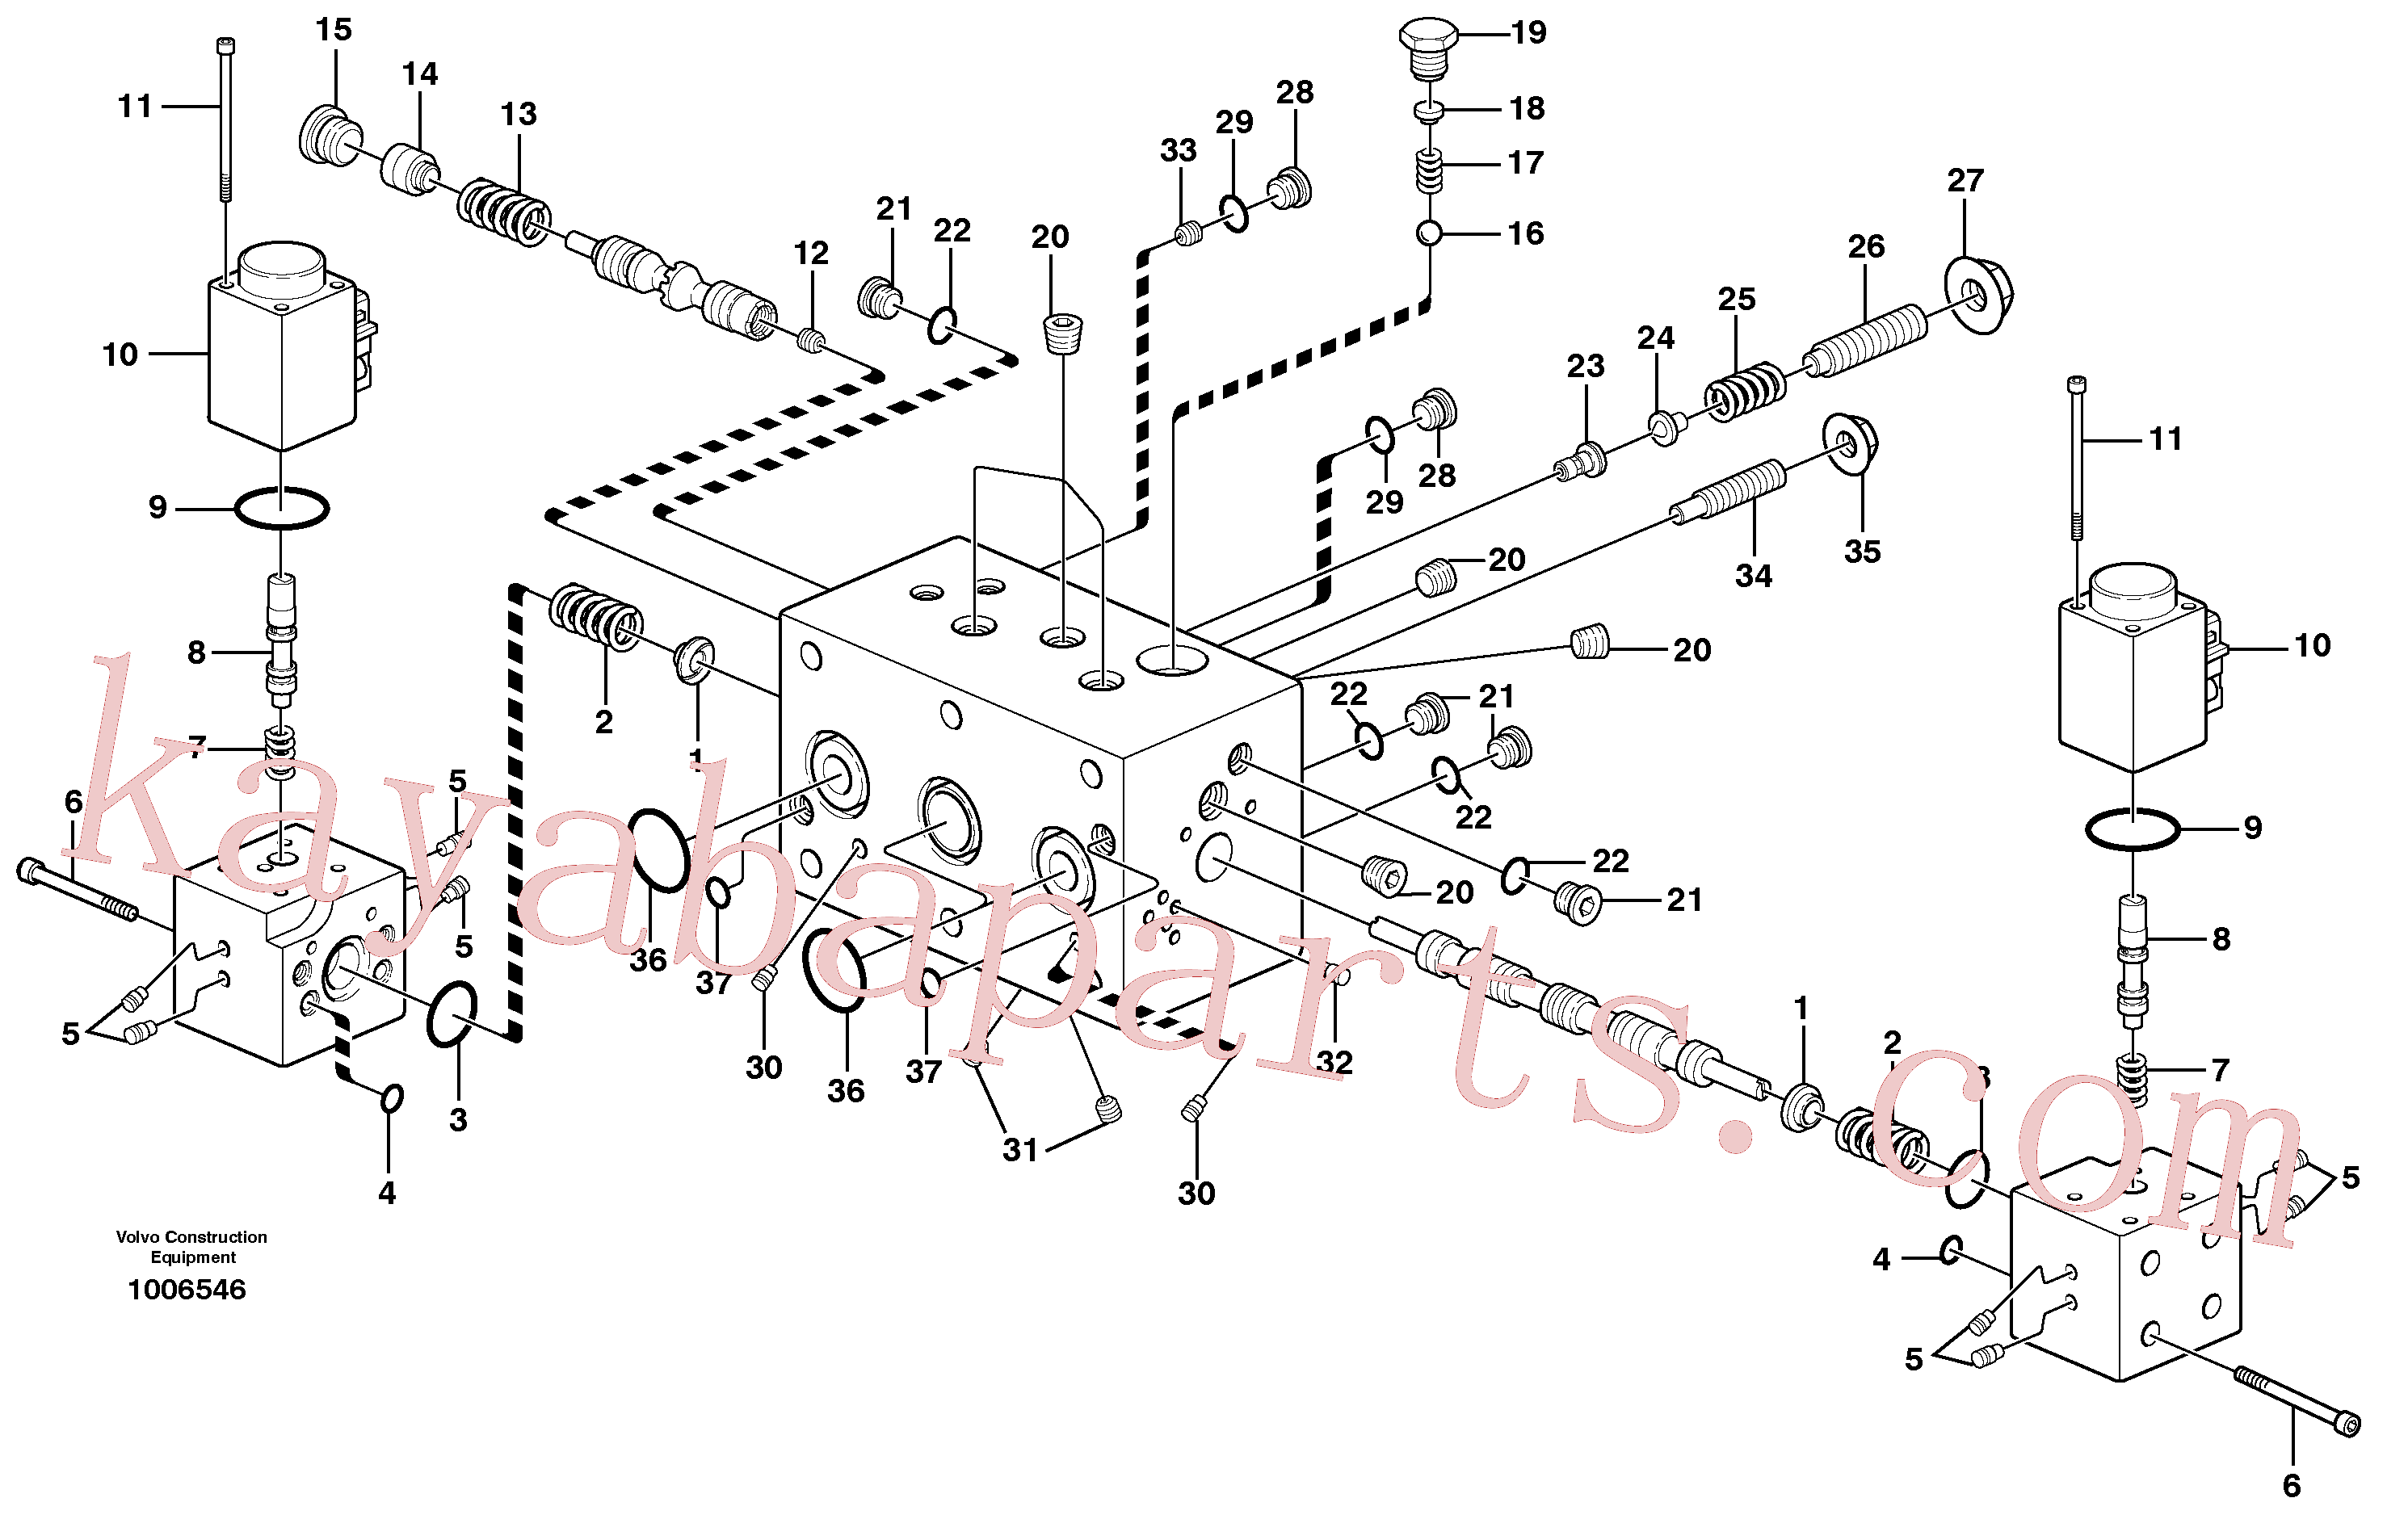 VOE11713994 for Volvo Hydraulic valve, X3(1006546 assembly)